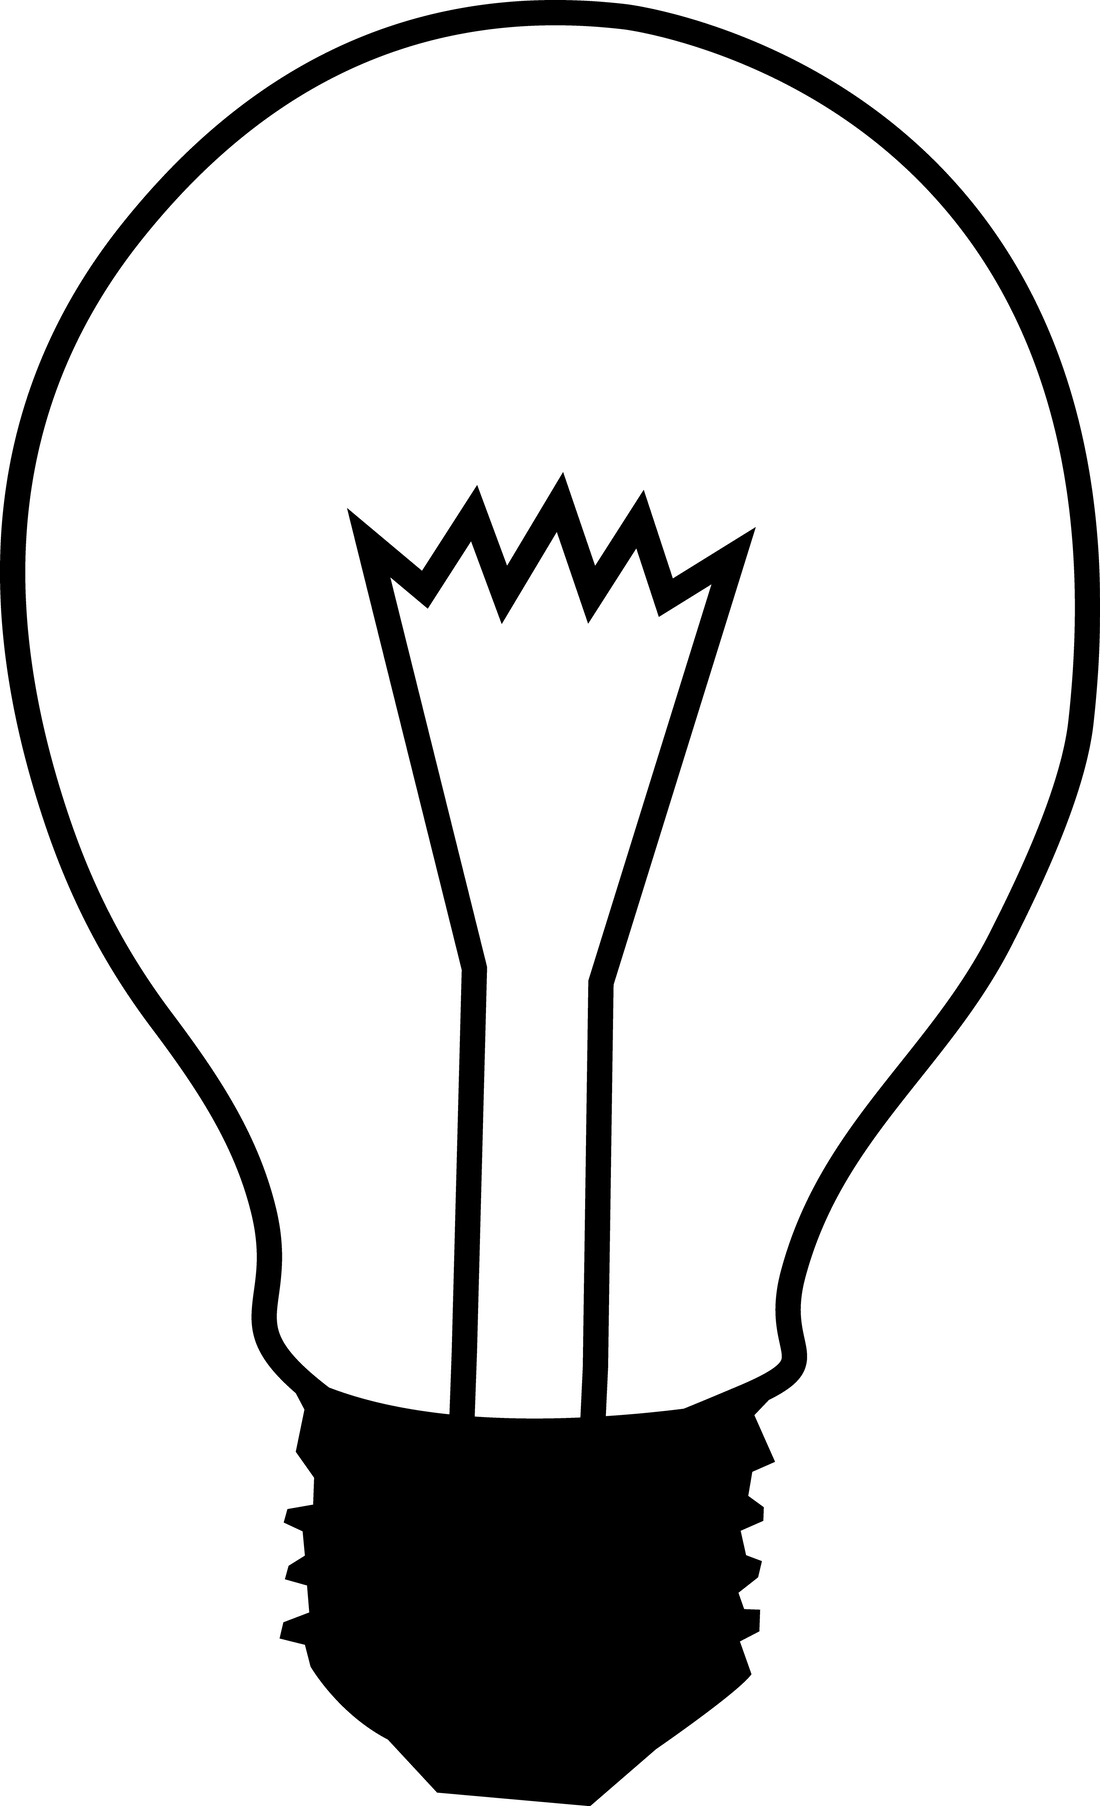 collection of electrical. Electricity clipart plug